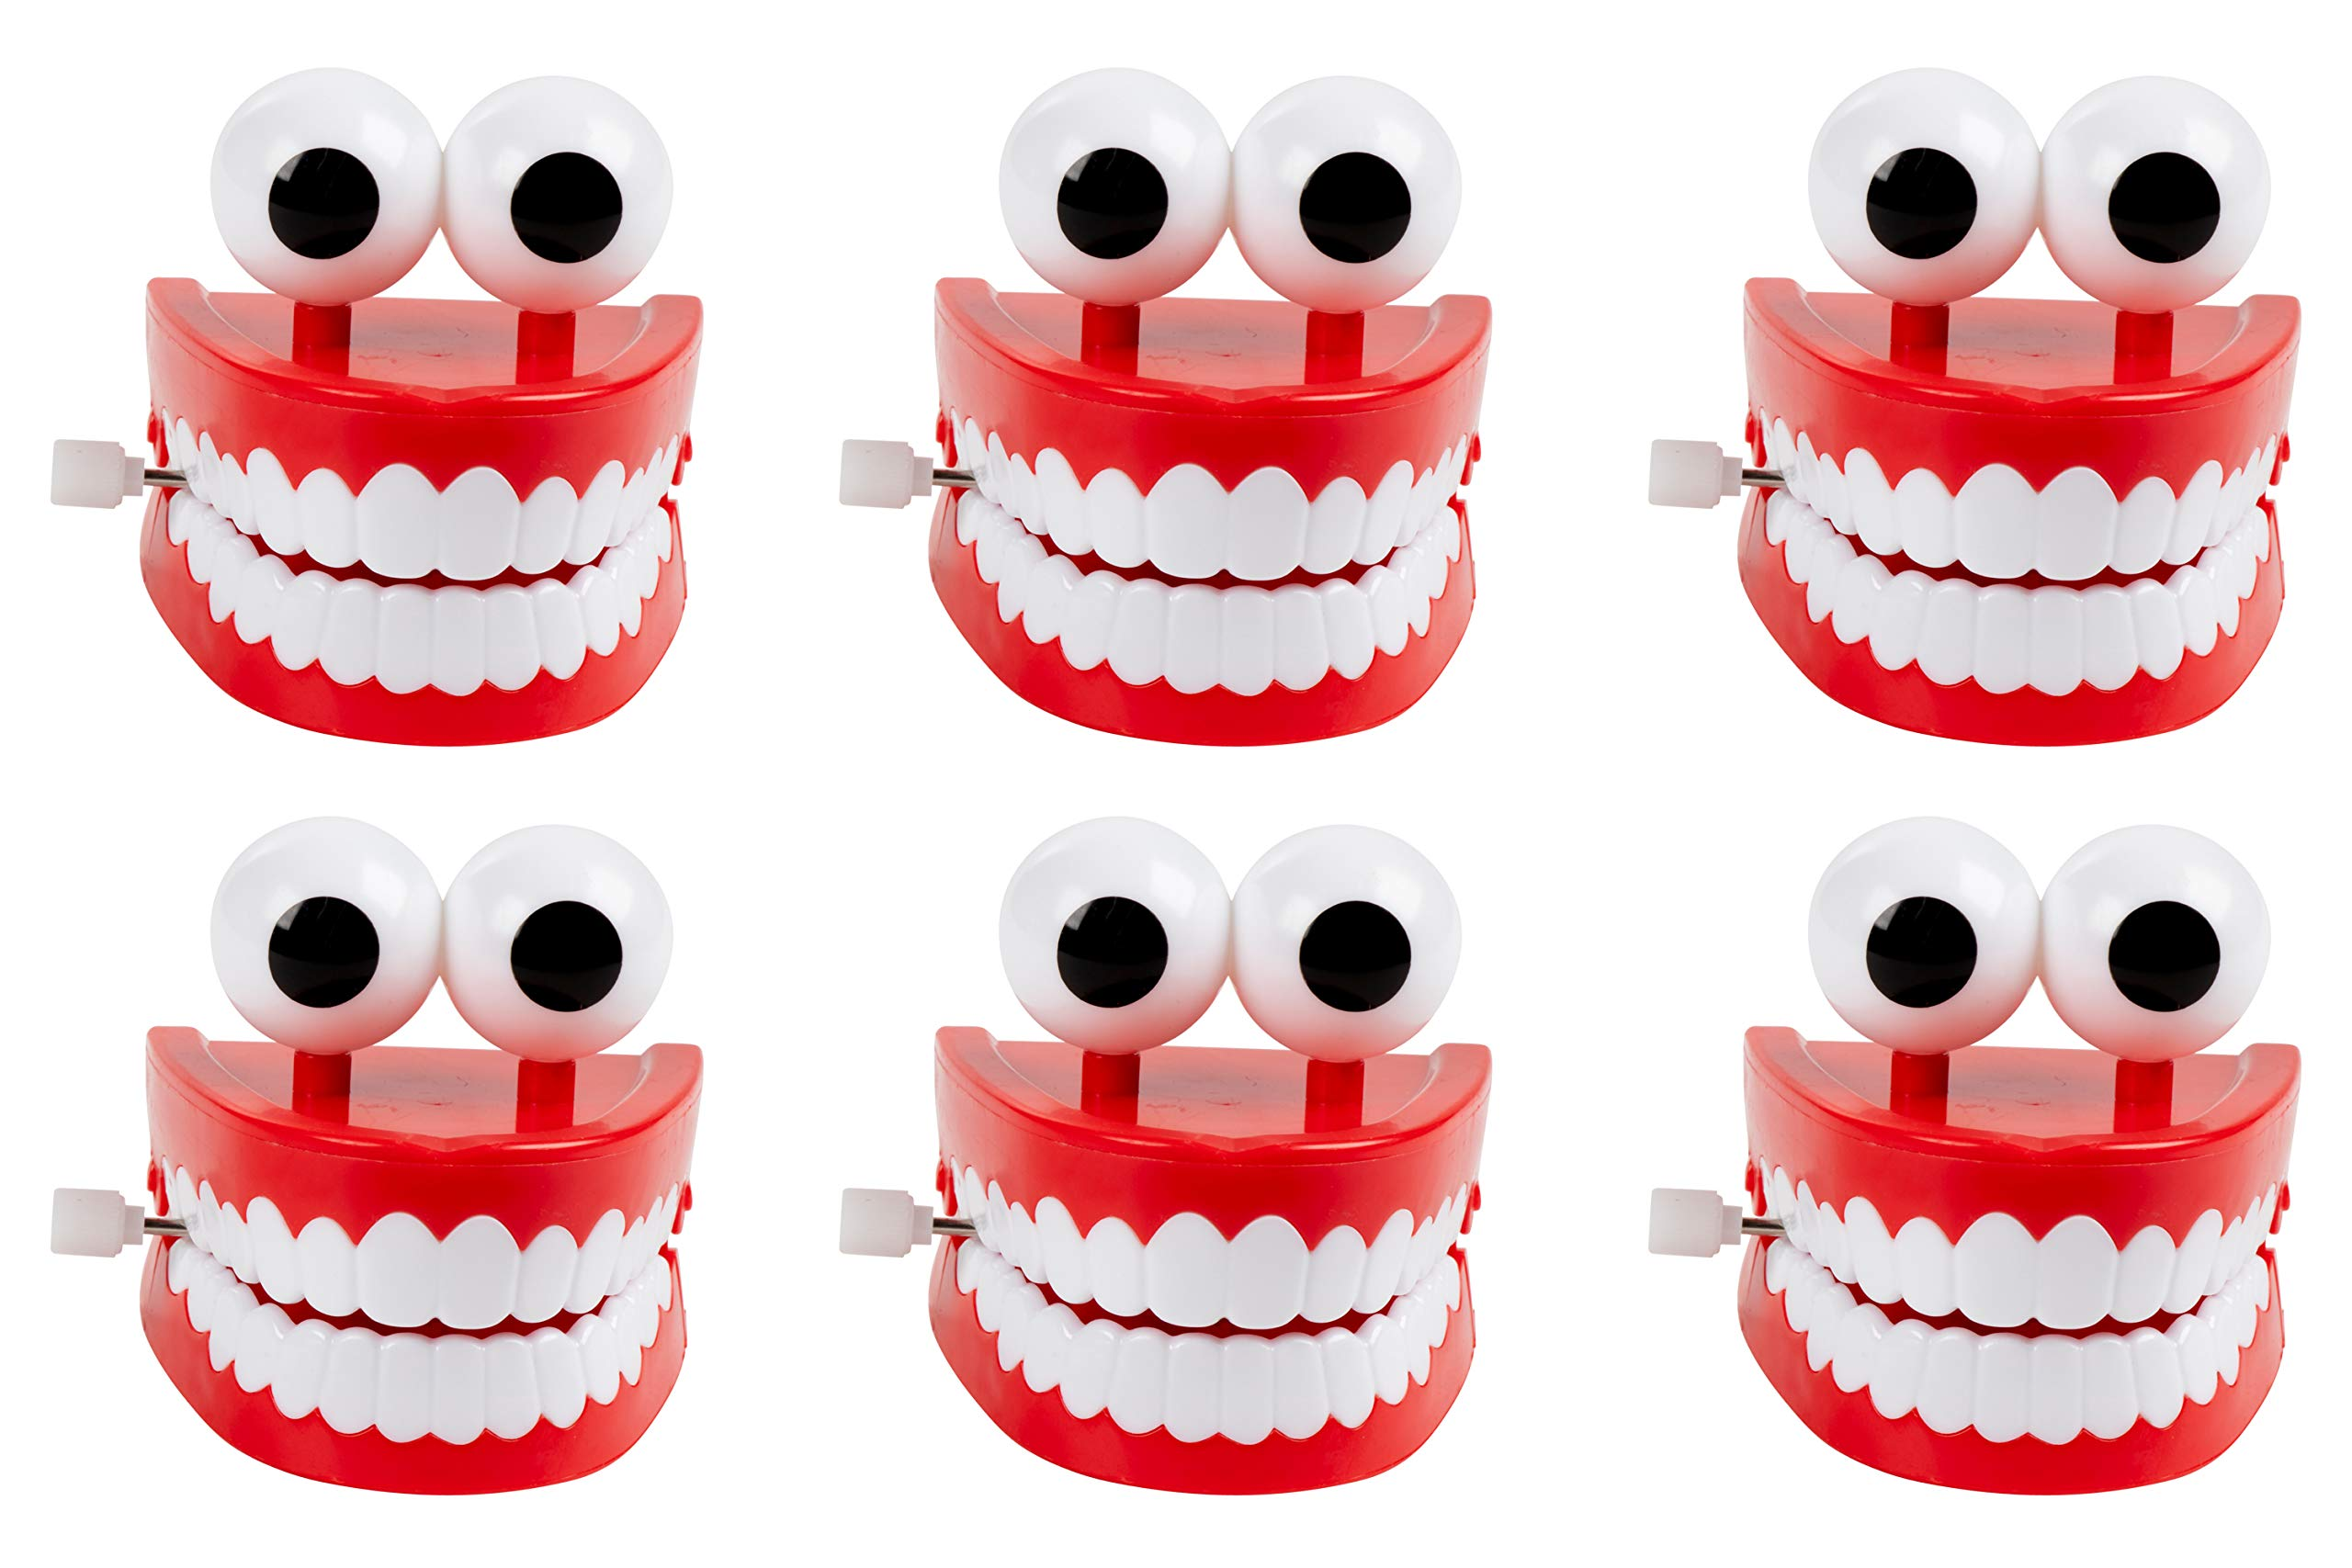 Blue Panda Chomping Teeth - 6-Pack Wind-Up Chattering Teeth with Eyes, Walking Teeth Toy, Perfect Party Favors, Novelty Toys and Gag Gifts for Halloween, Kids Birthday Parties, 2.5 x 2.6 x 2.5 Inches by Blue Panda